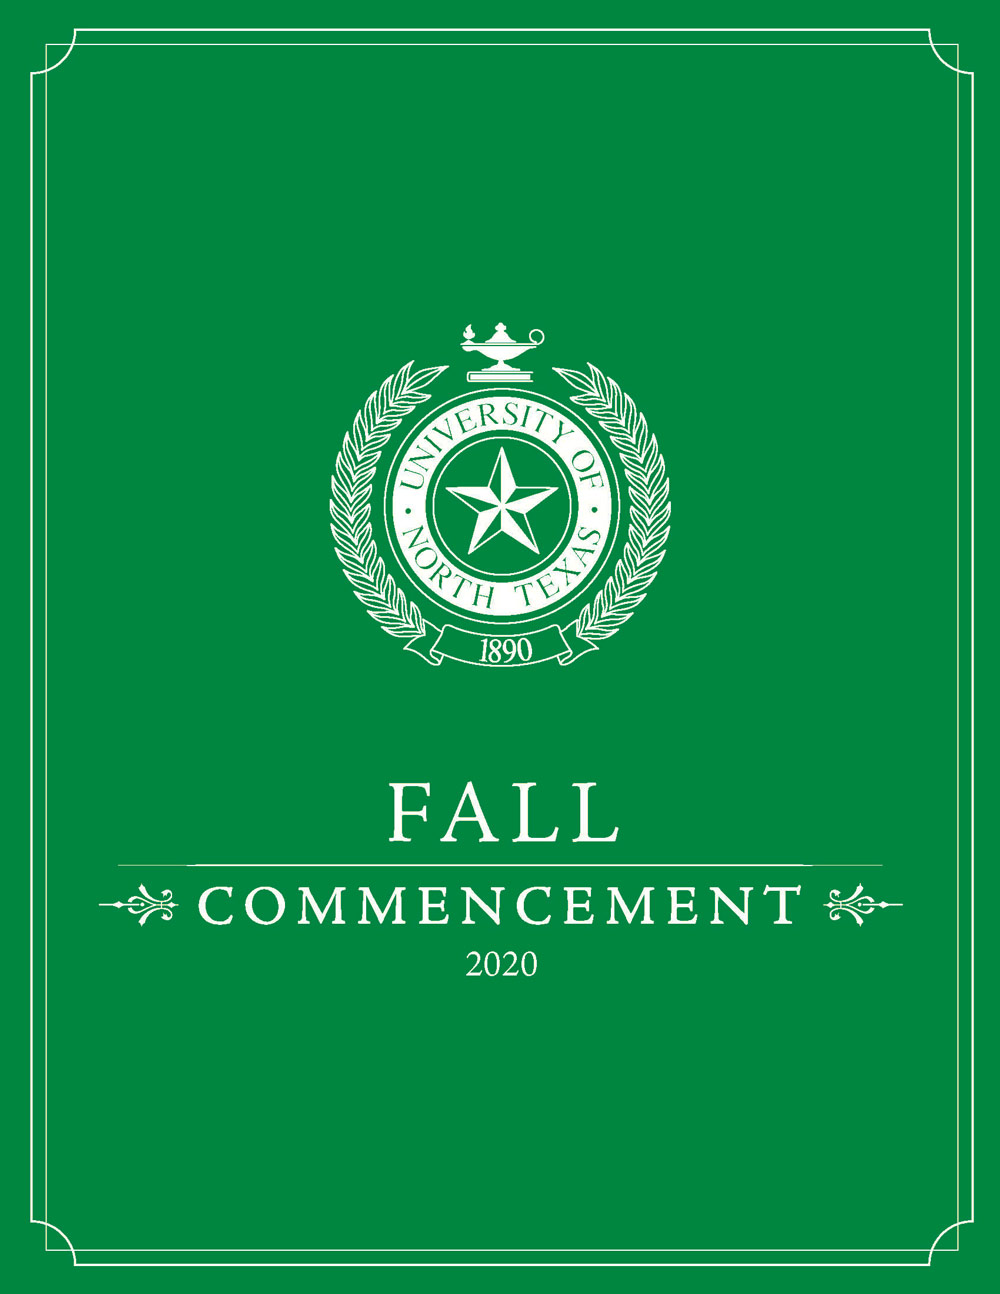 Fall 2020 Commencement program cover